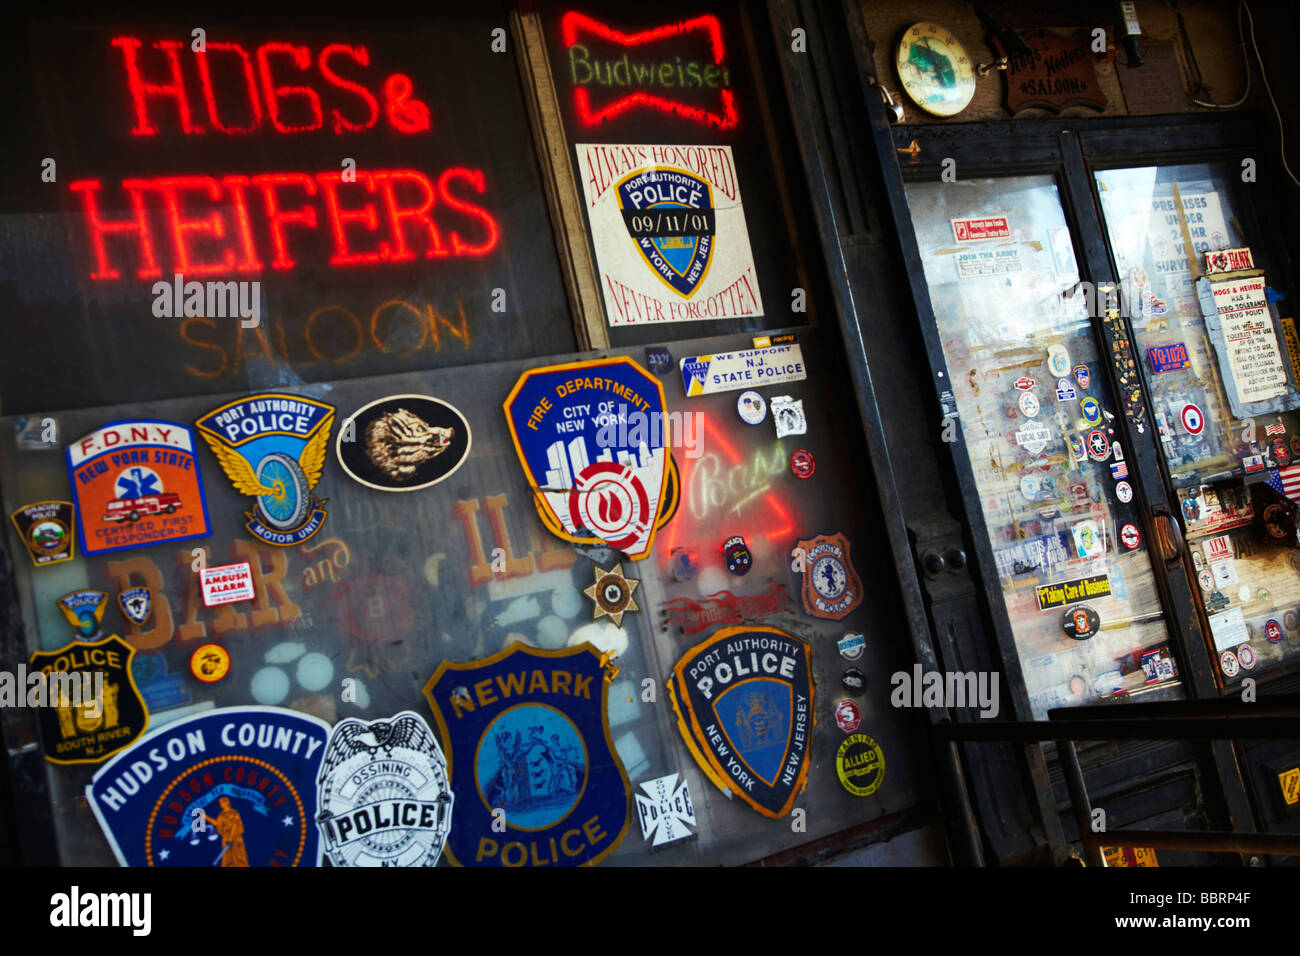 hogs a heifers saloon, meatpacking district, NY - Stock Image